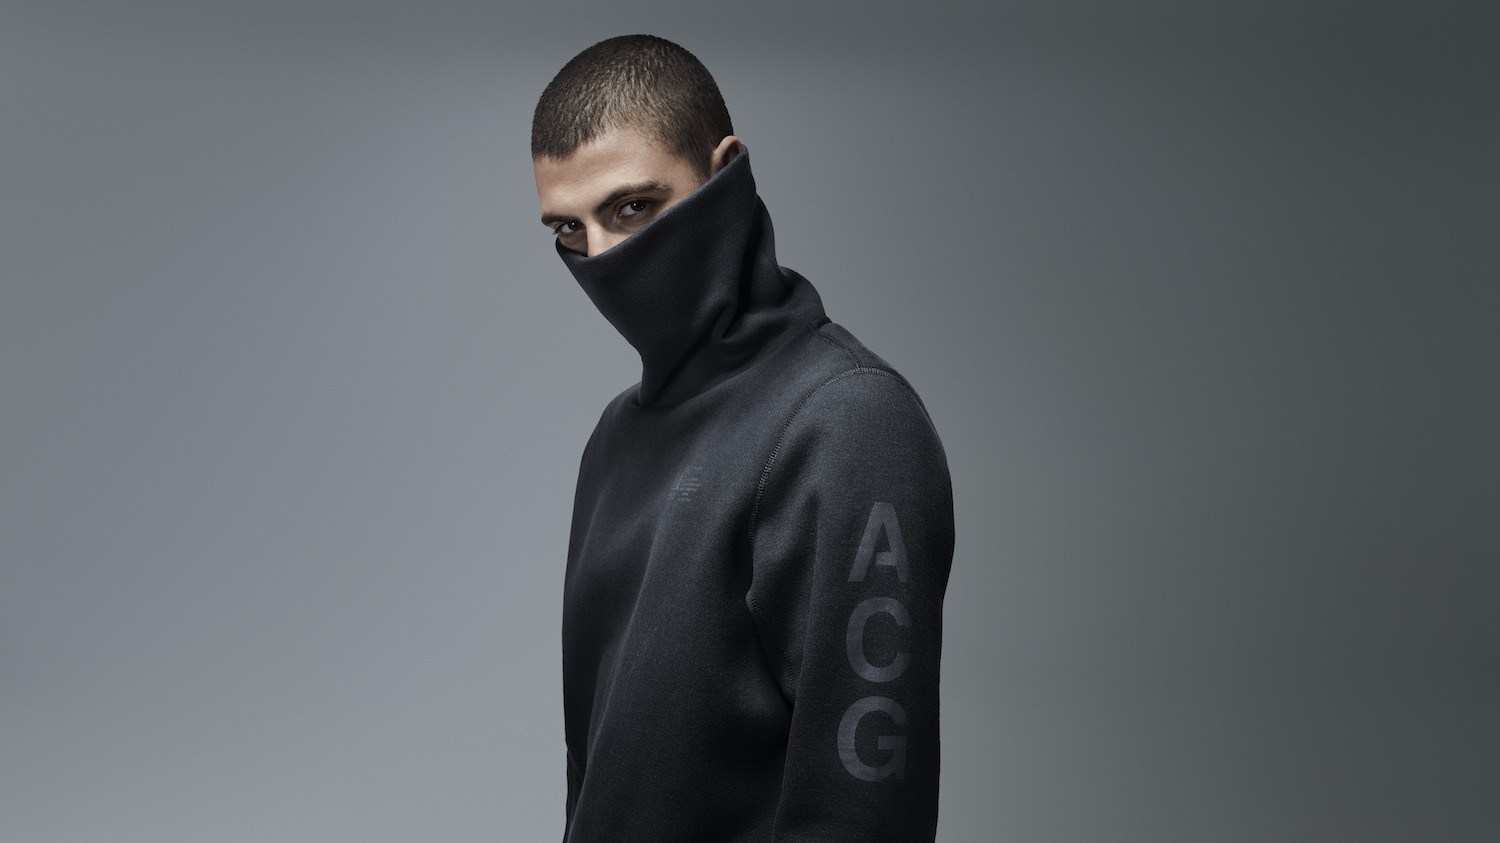 nike renews the acg line